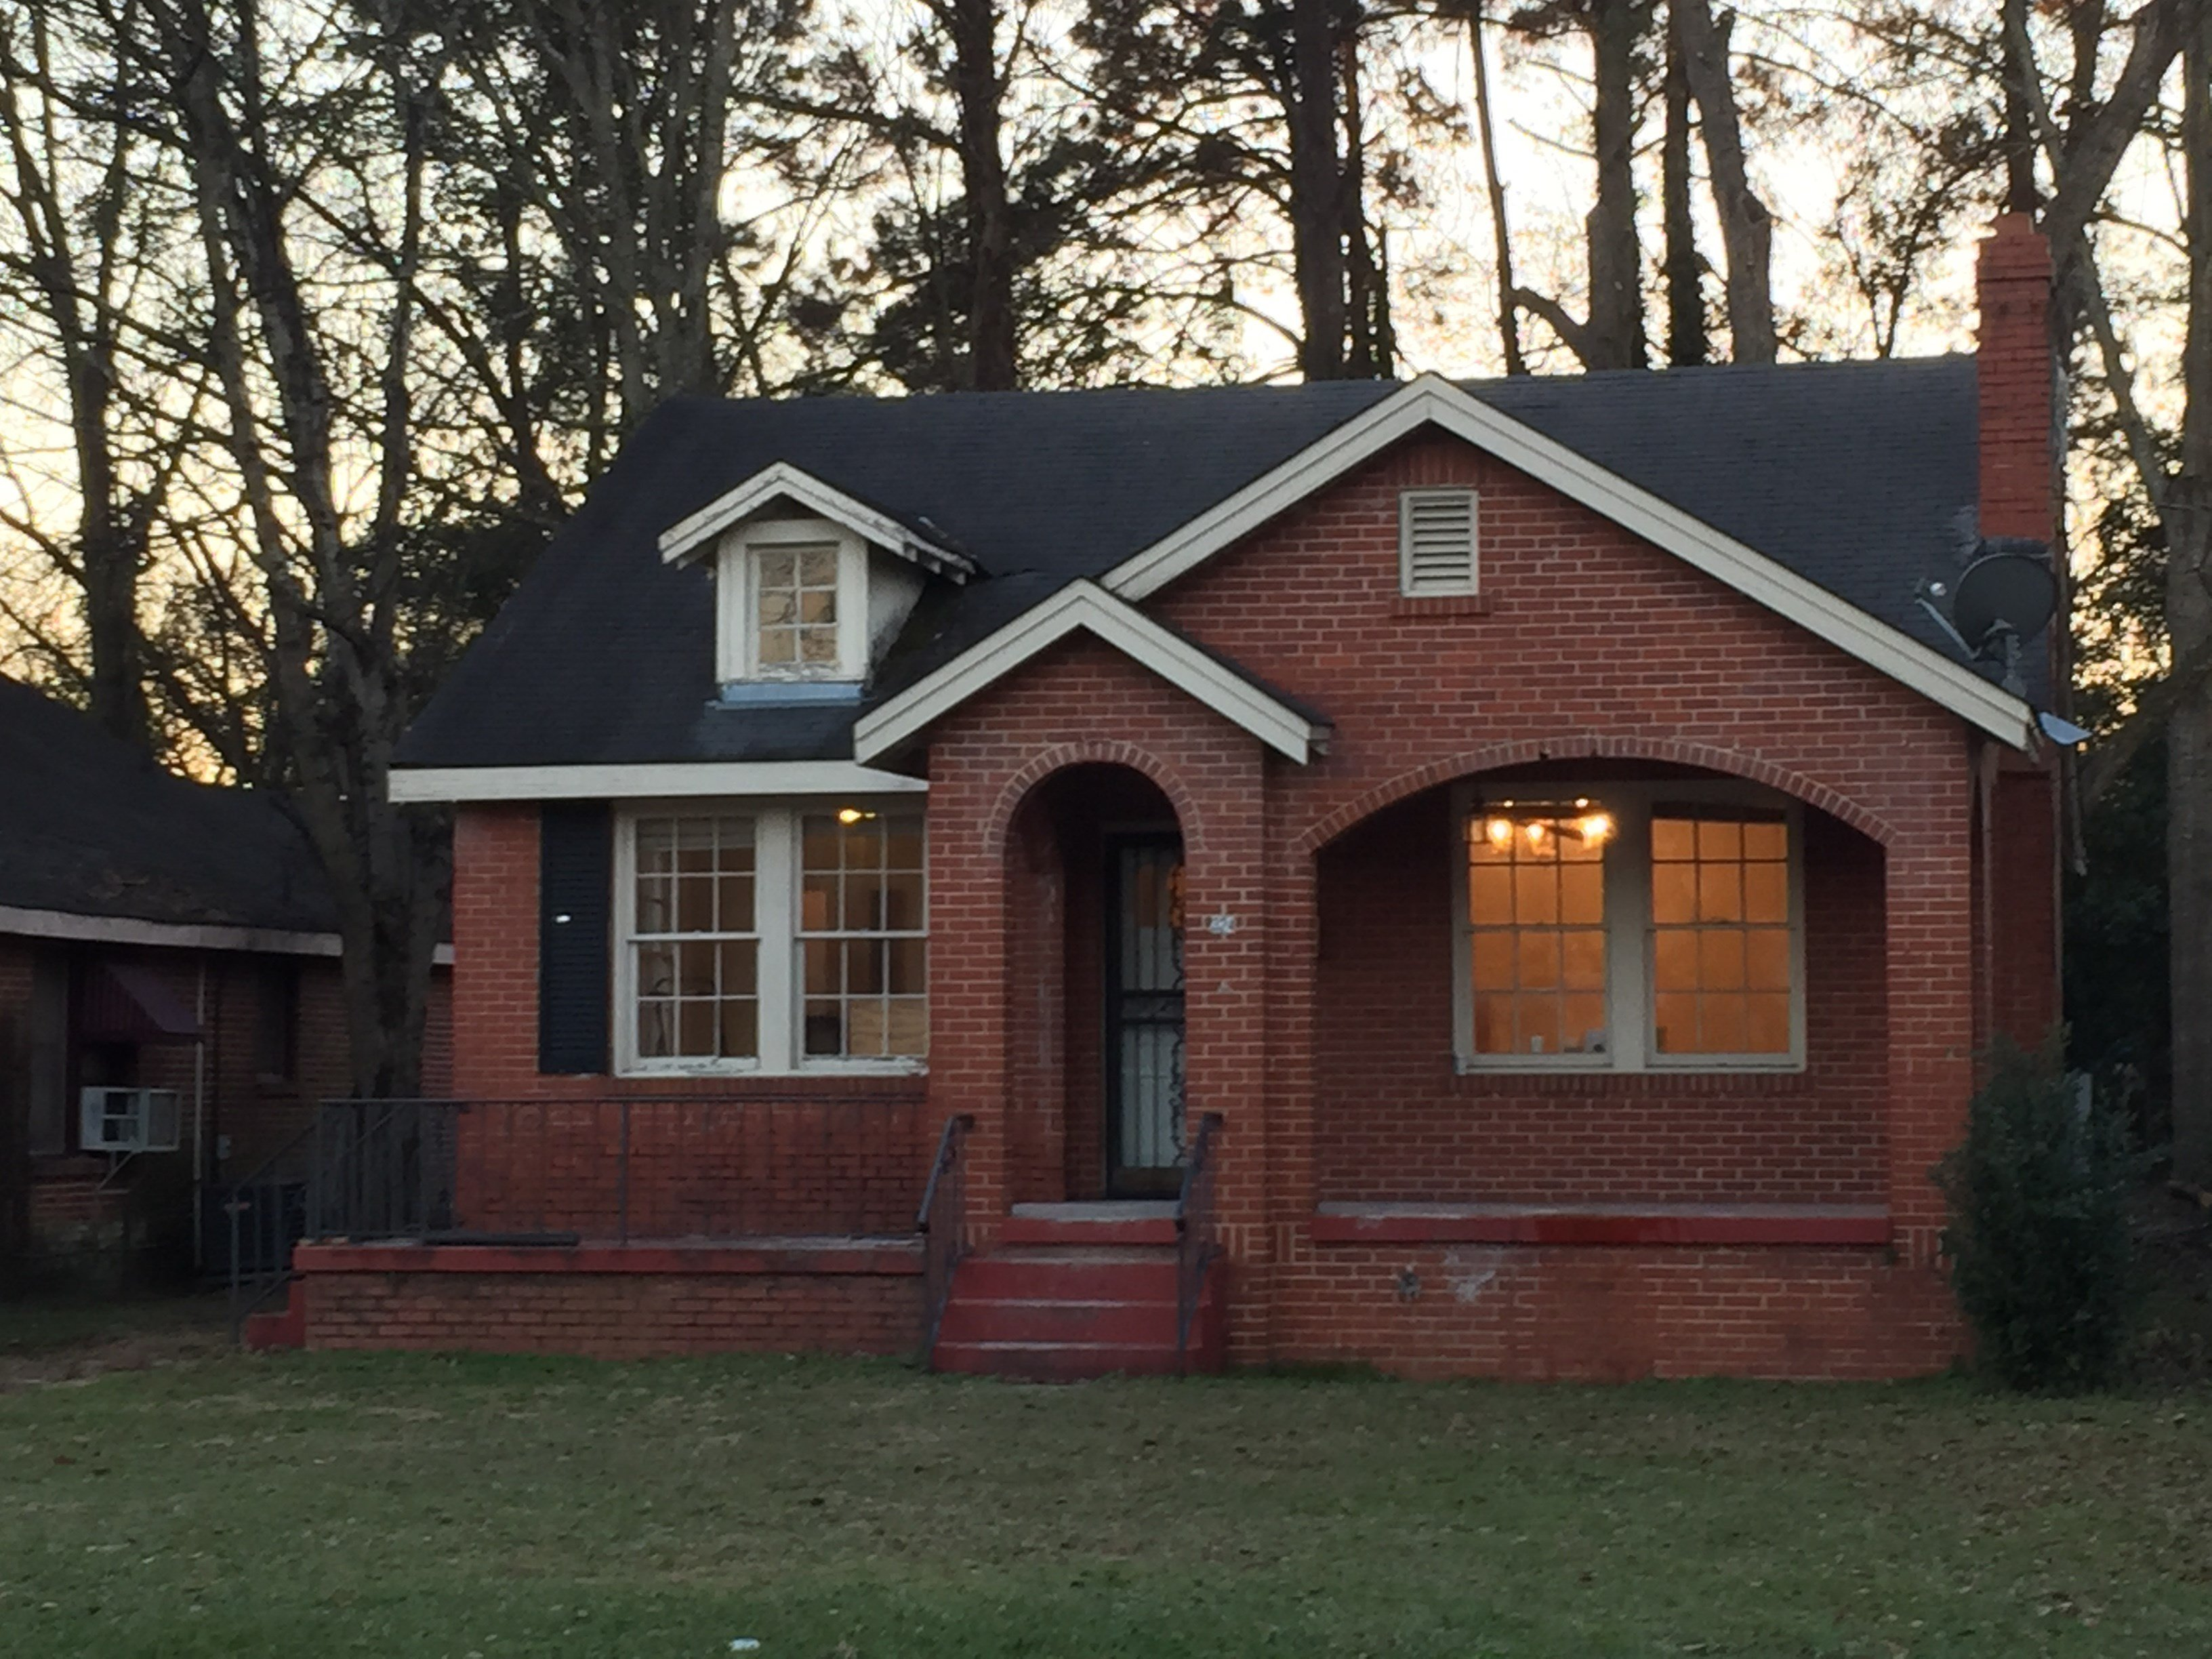 Best Section 8 Housing And Apartments For Rent In Montgomery Montgomery Alabama With Pictures